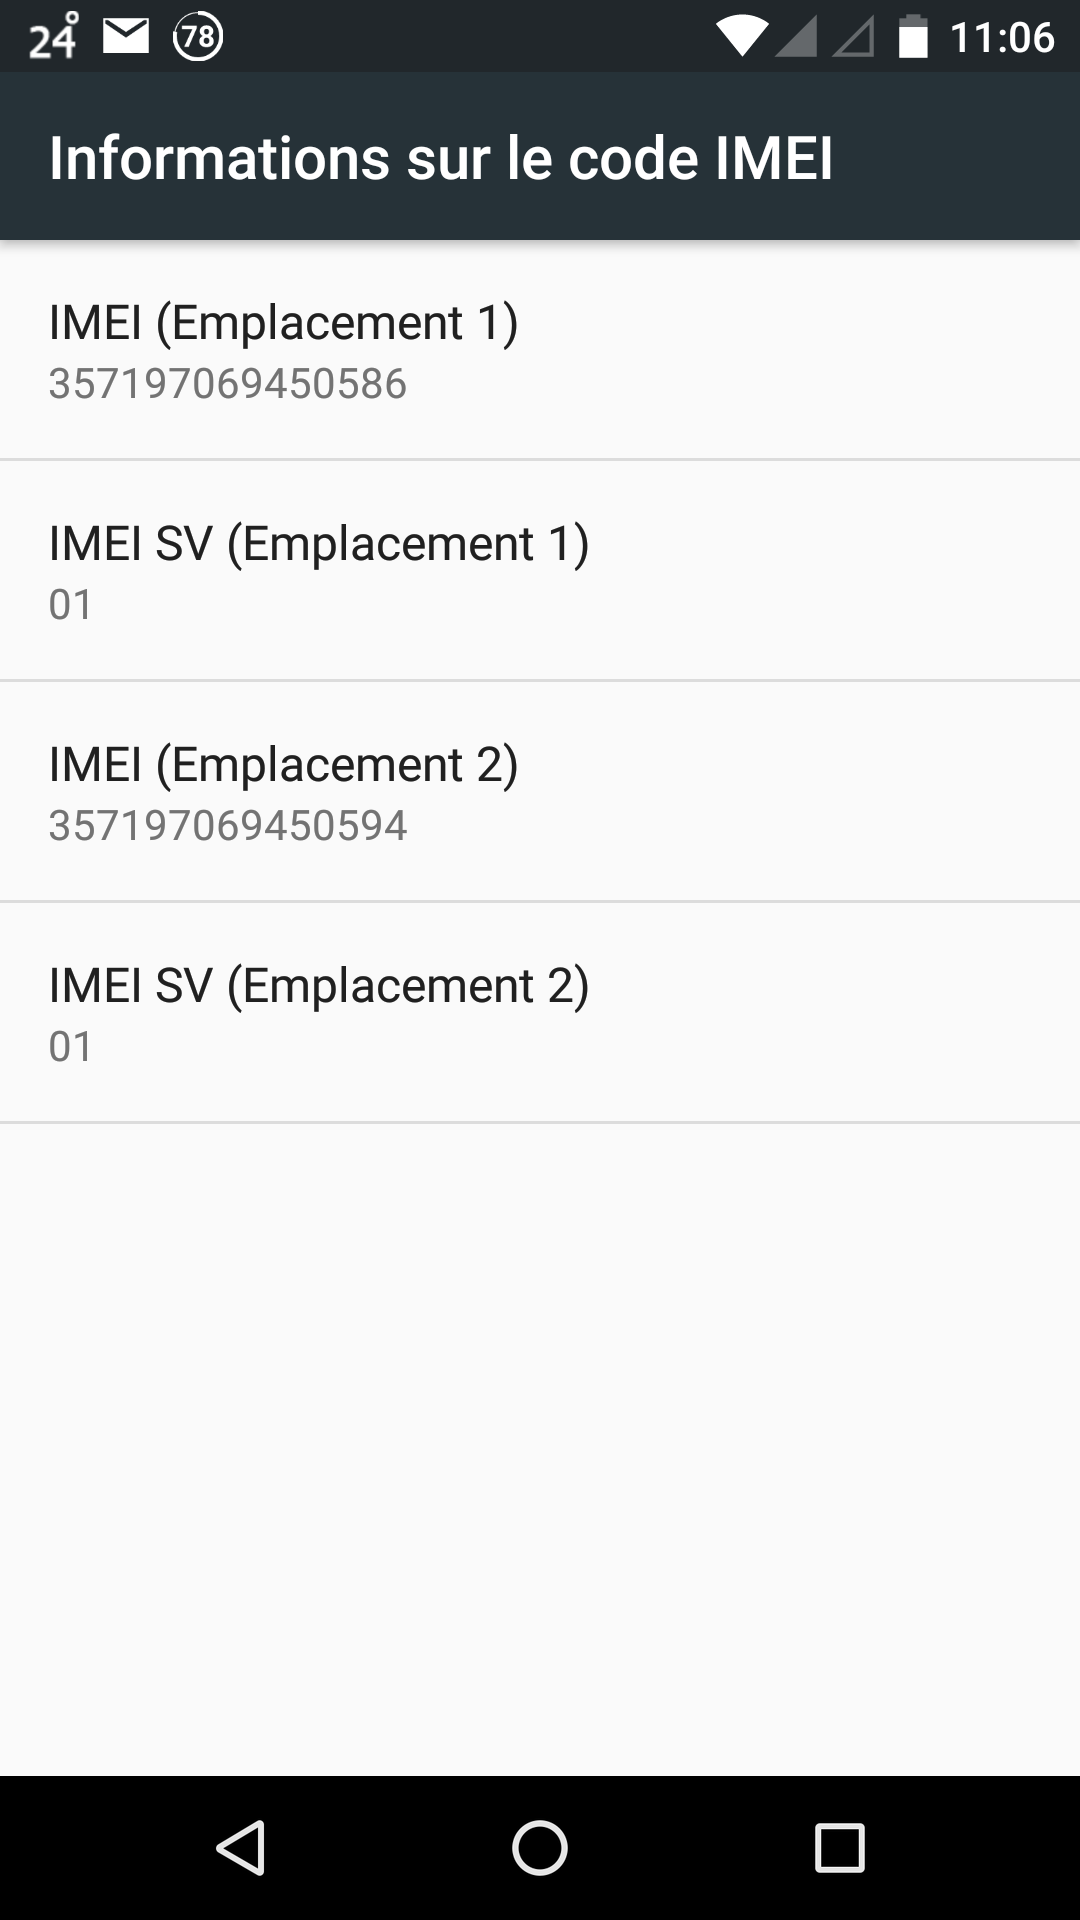 https://blog.whyopencomputing.ch/wp-content/uploads/2018/07/2018.07.25_écran_Fairphone_No_IMEI.png